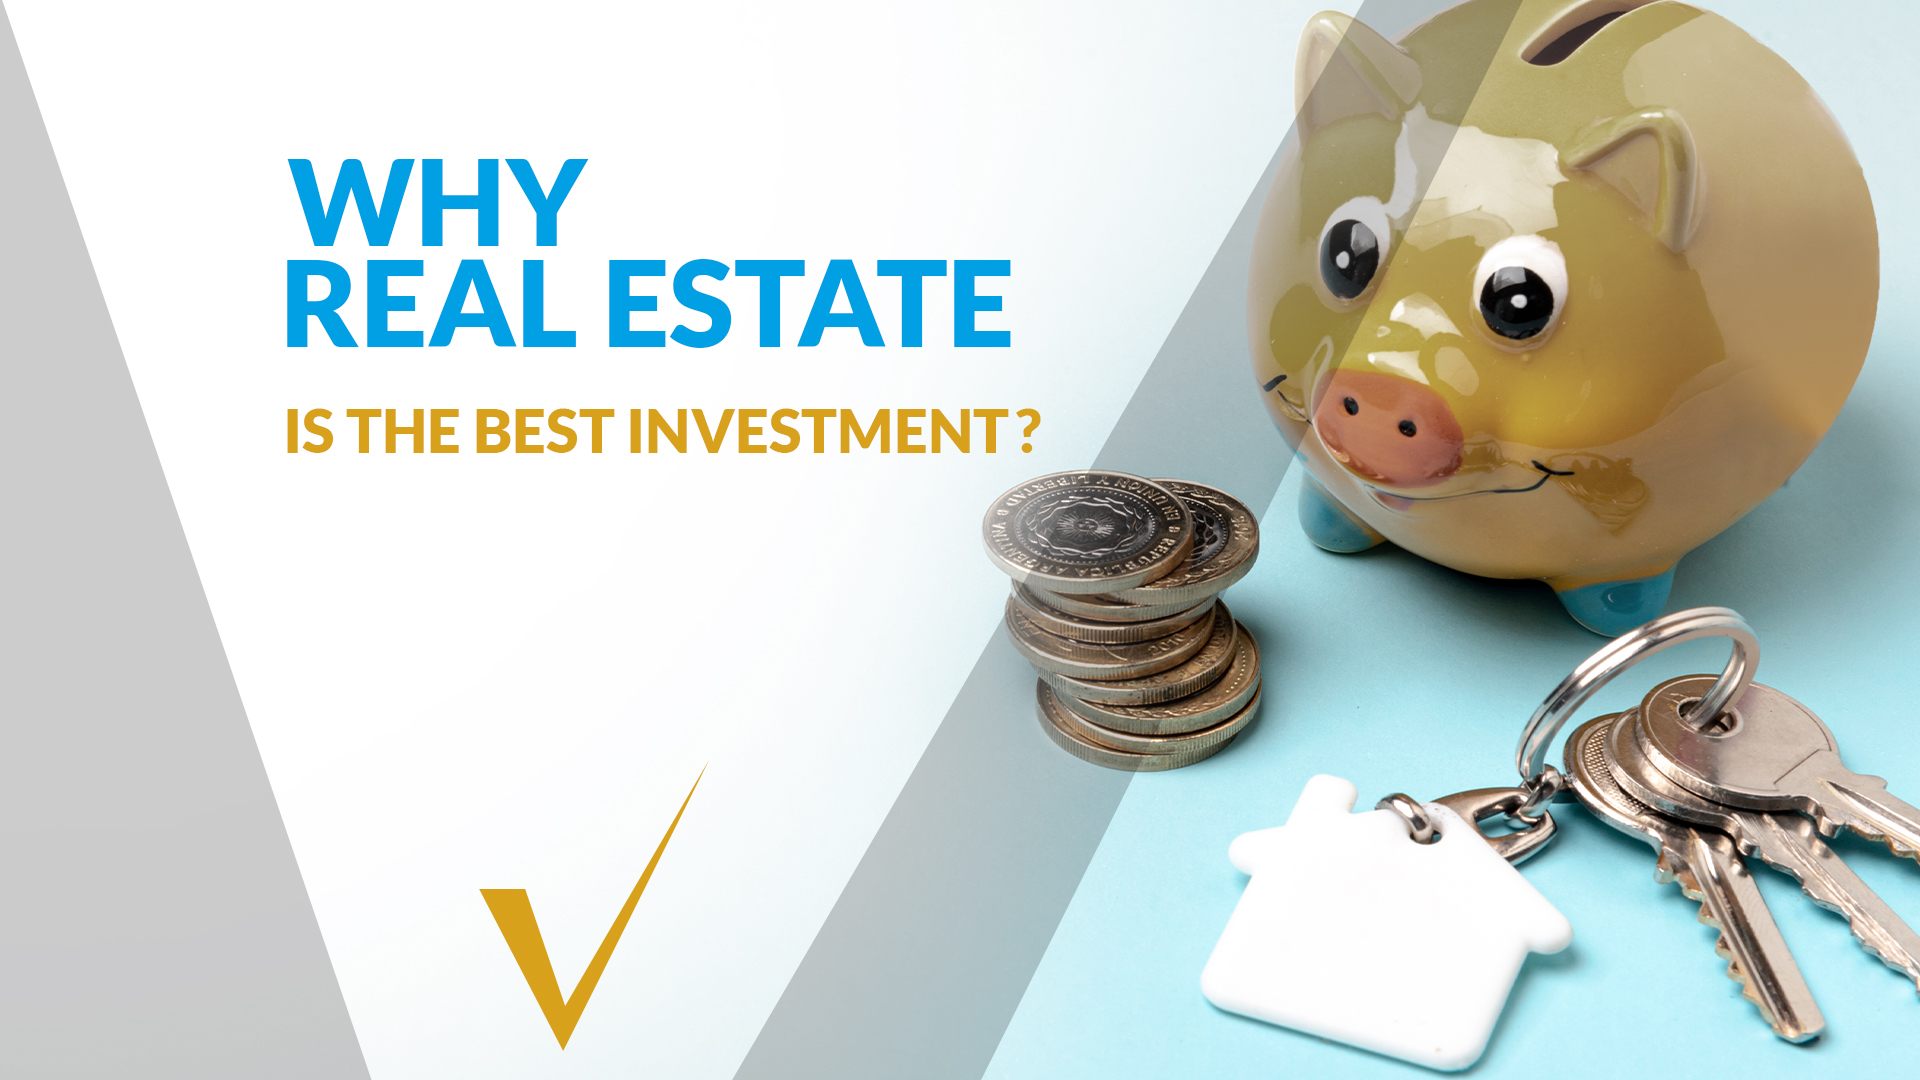 Why Real estate is the best investment image